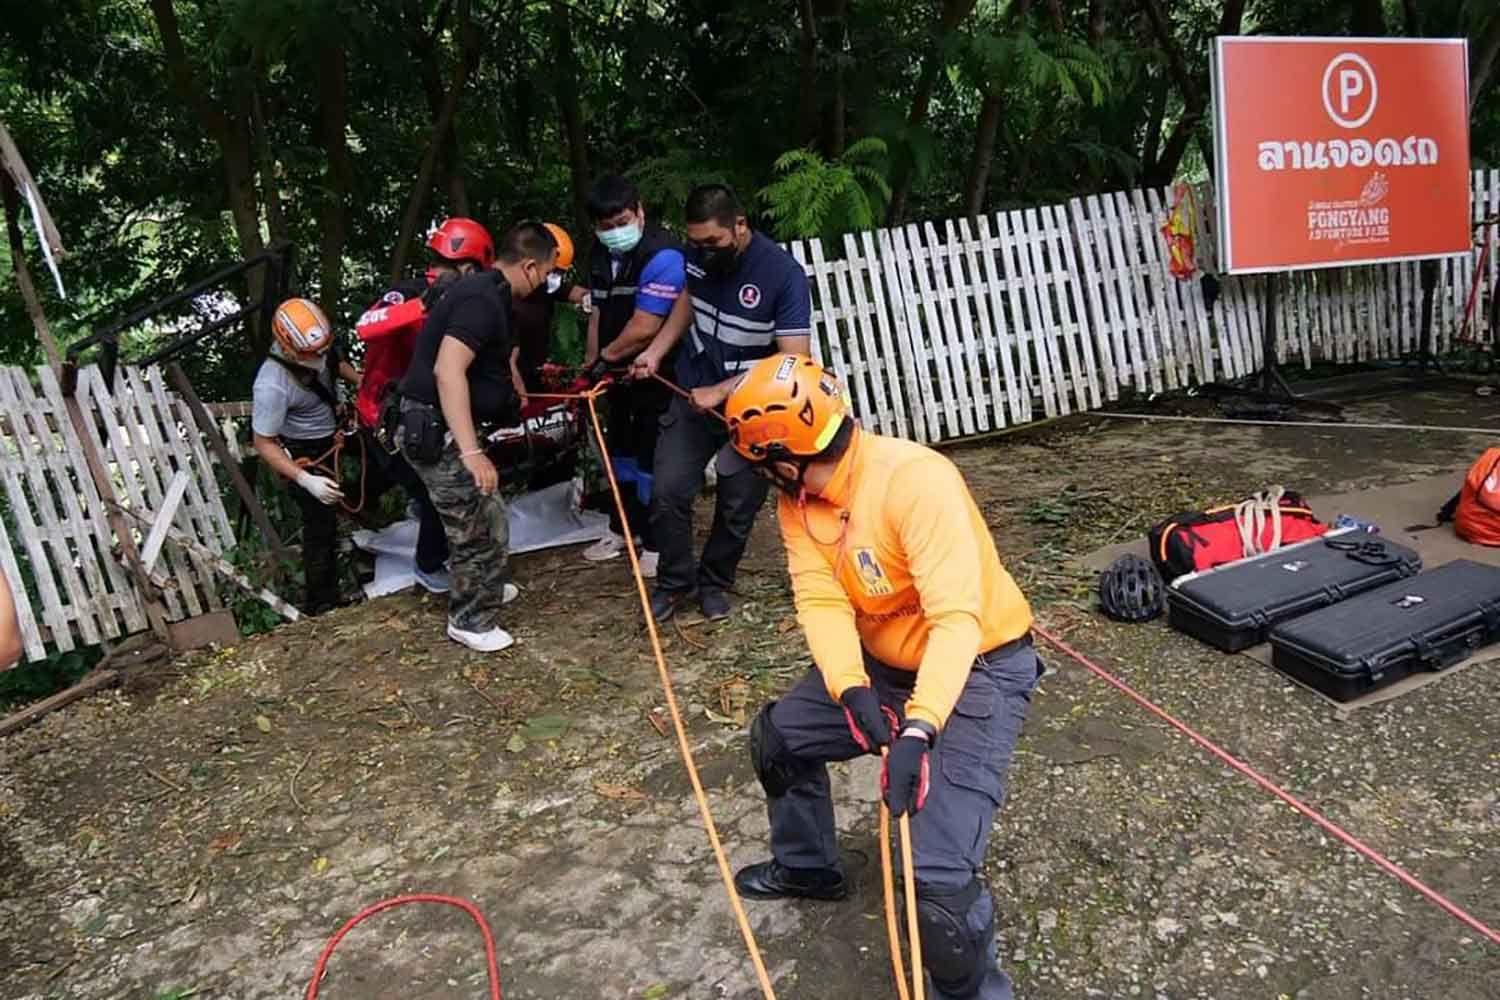 Cyclist plunges into Chiang Mai ravine